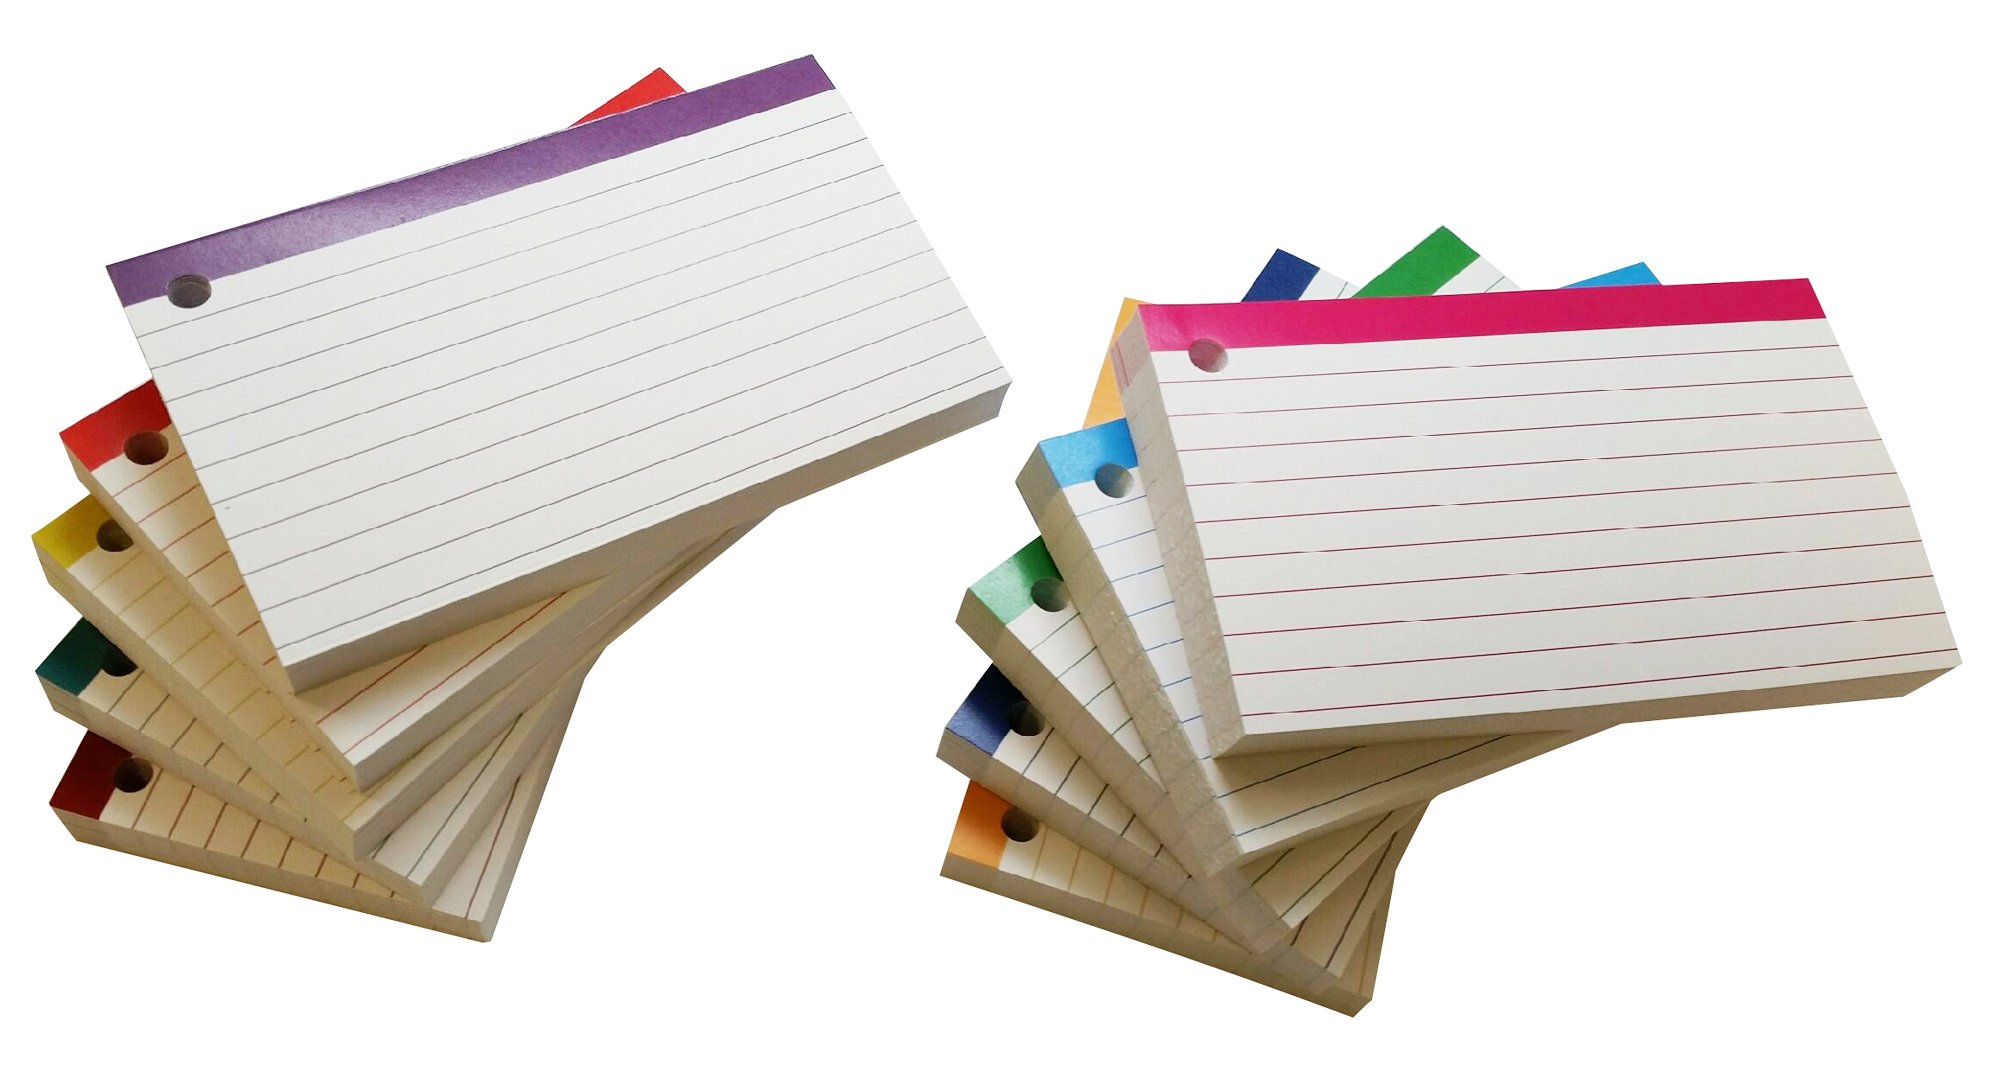 Debra Dale Designs - Color Bar Ruled Single Hole Punched Index Cards - 3 x 5 Inches - 500 (50 each of 10 colors) - Shrunk Wrapped - Standard 110# Index Card Stock - 199 GSM - 10 Metal Binder Rings